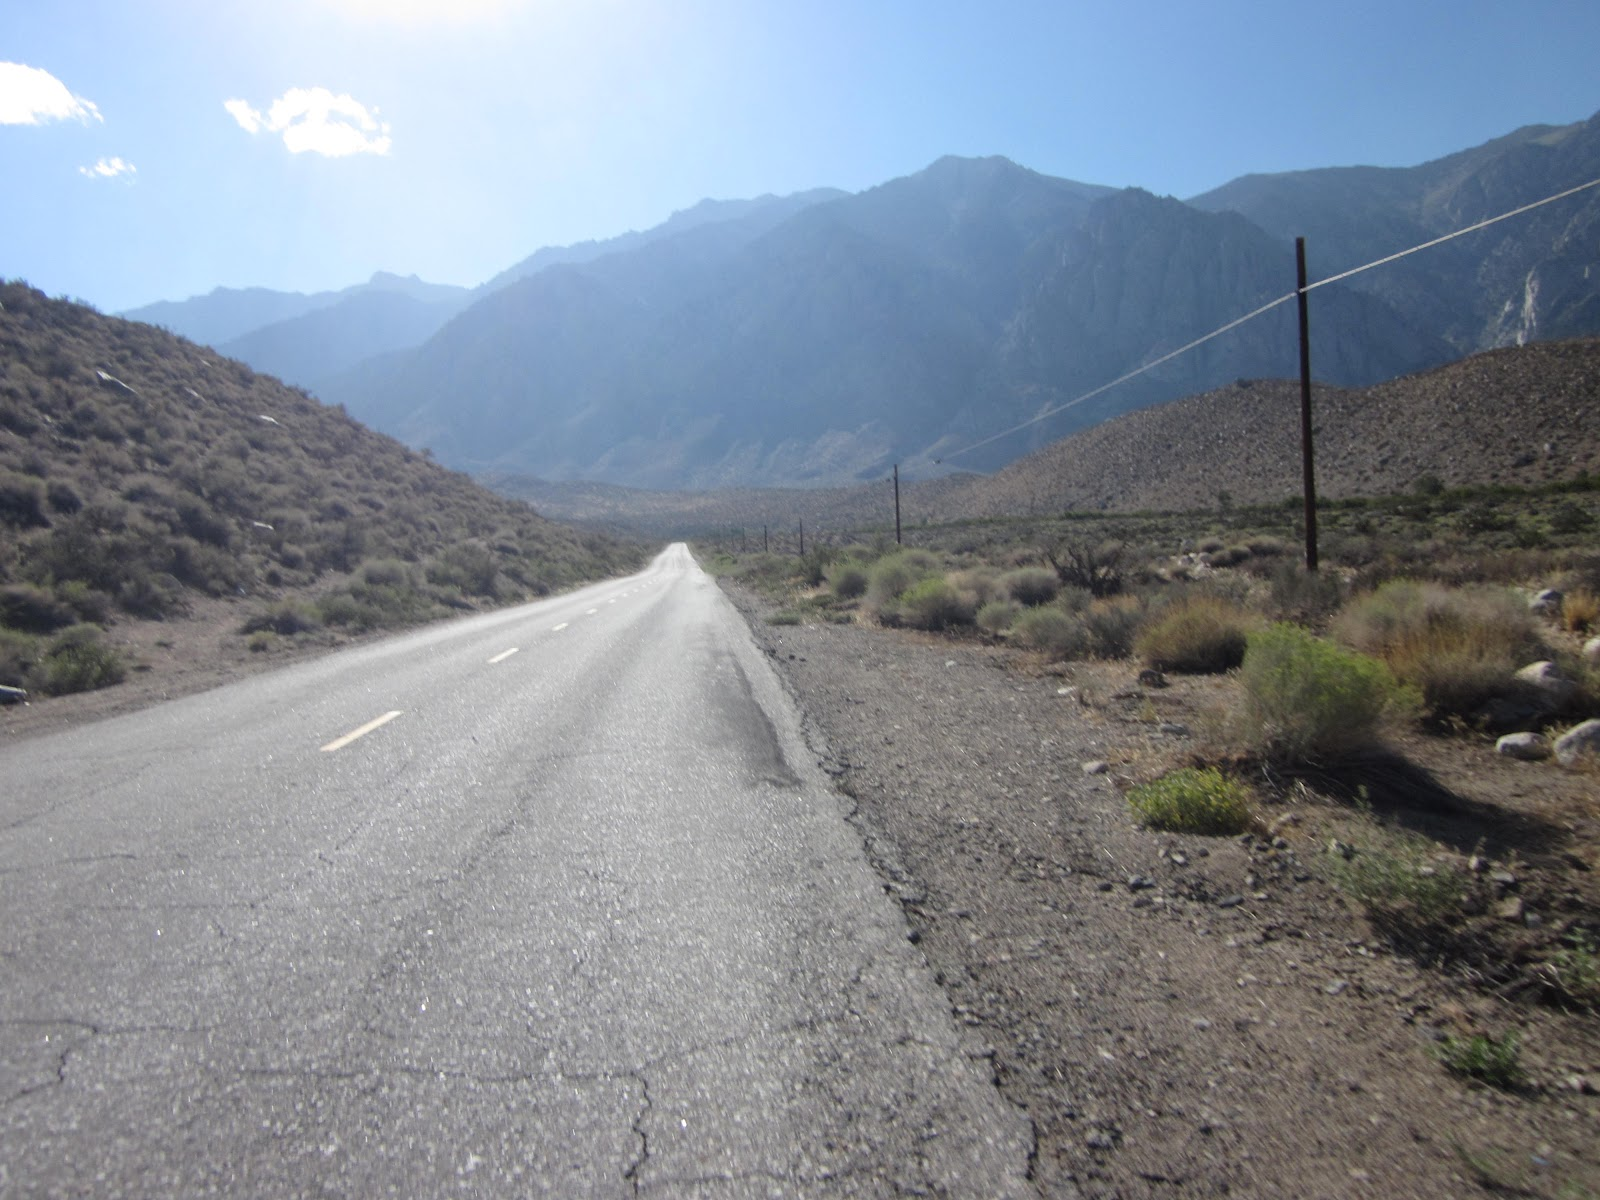 Bicycle ride up Pine Creek Road - Owens Valley - start of climb - road and canyon